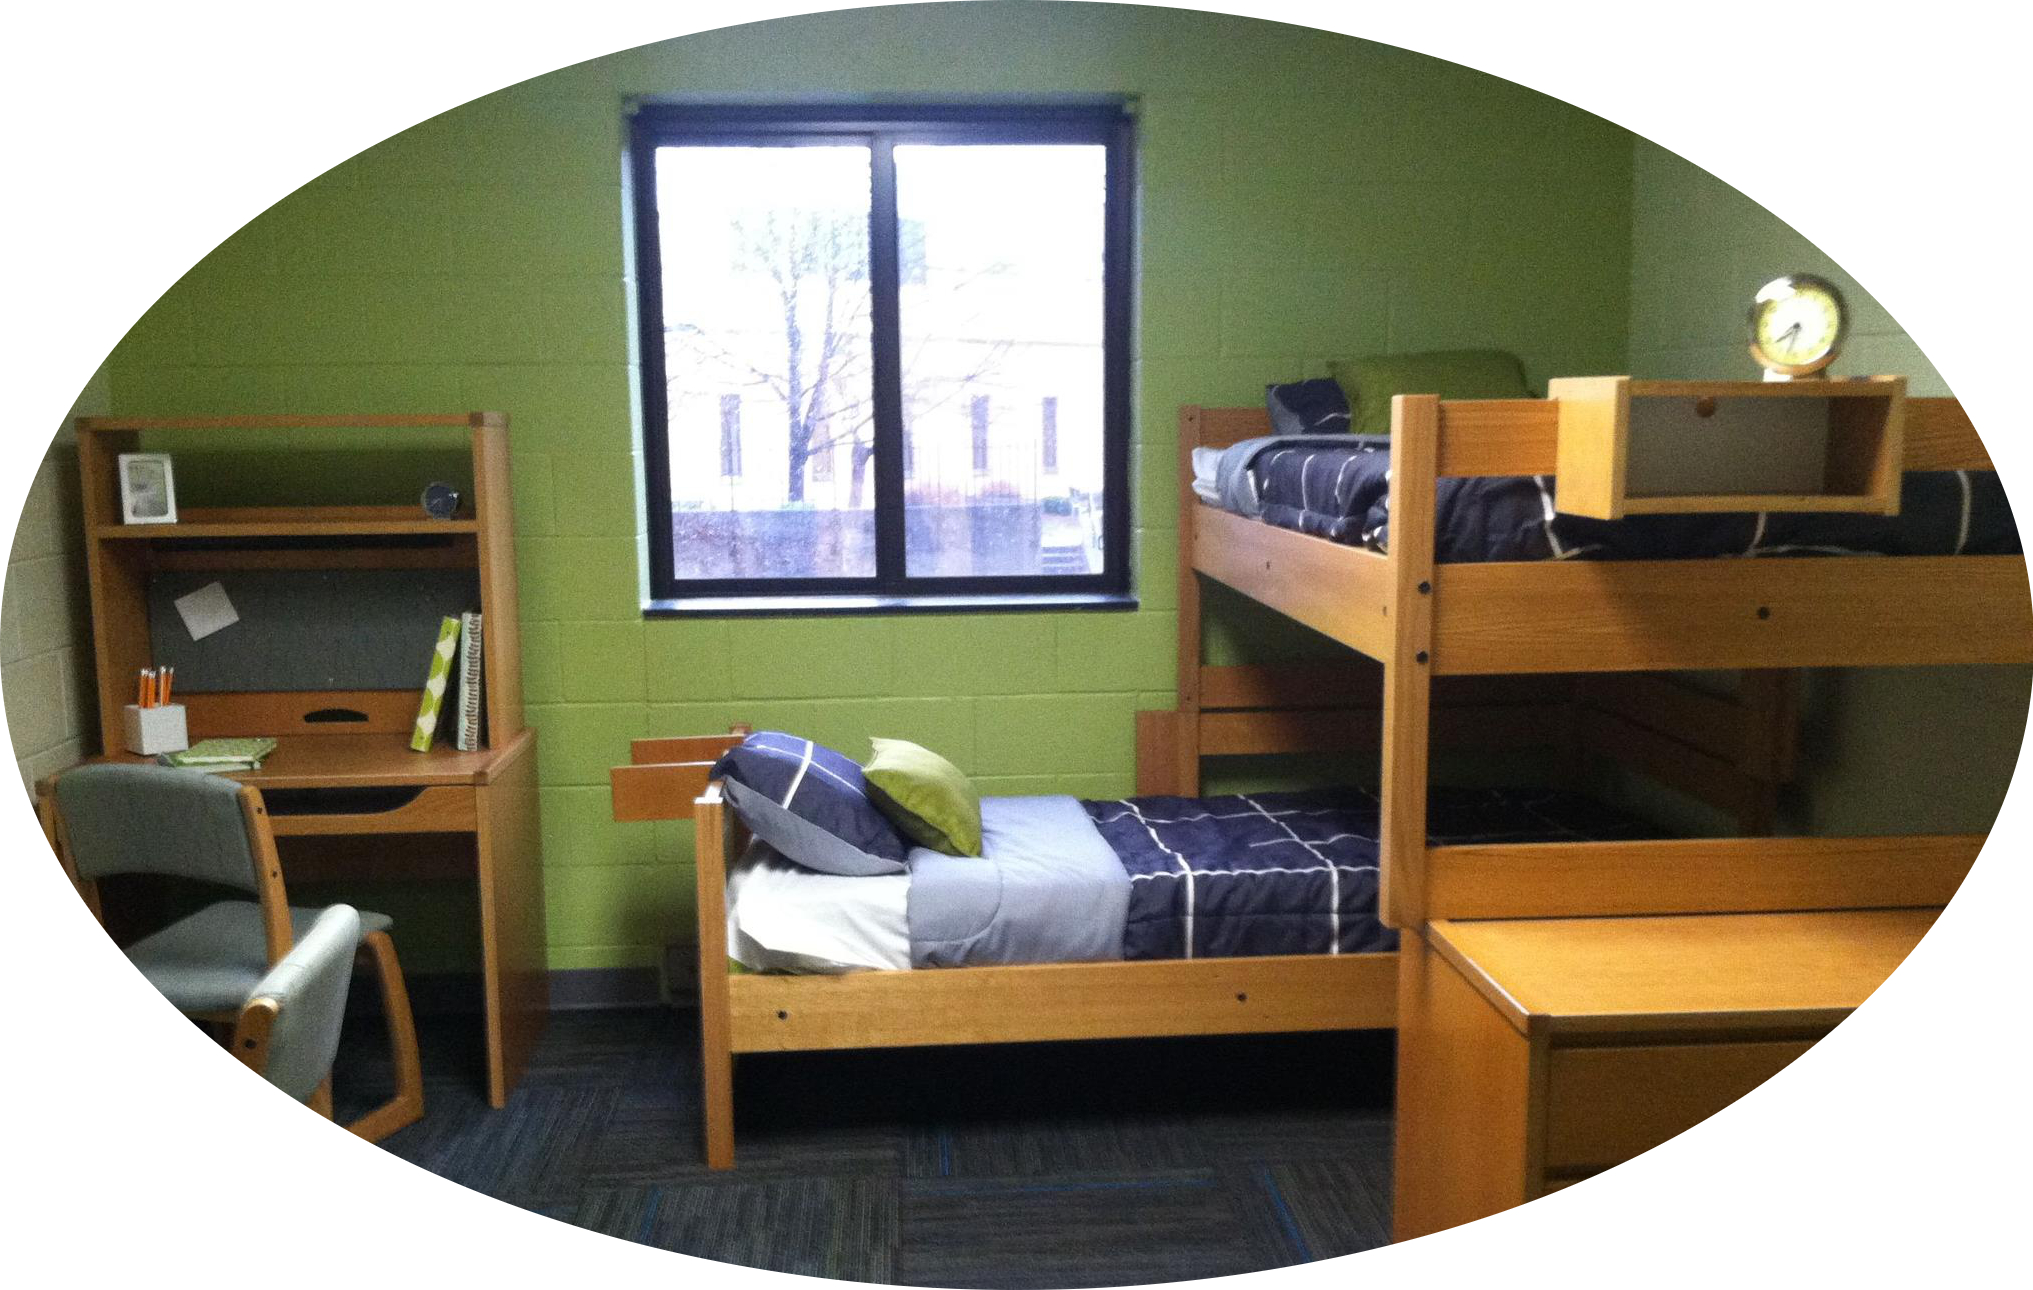 College Dorm Rooms: Problems and Solutions - Life Storage Blog